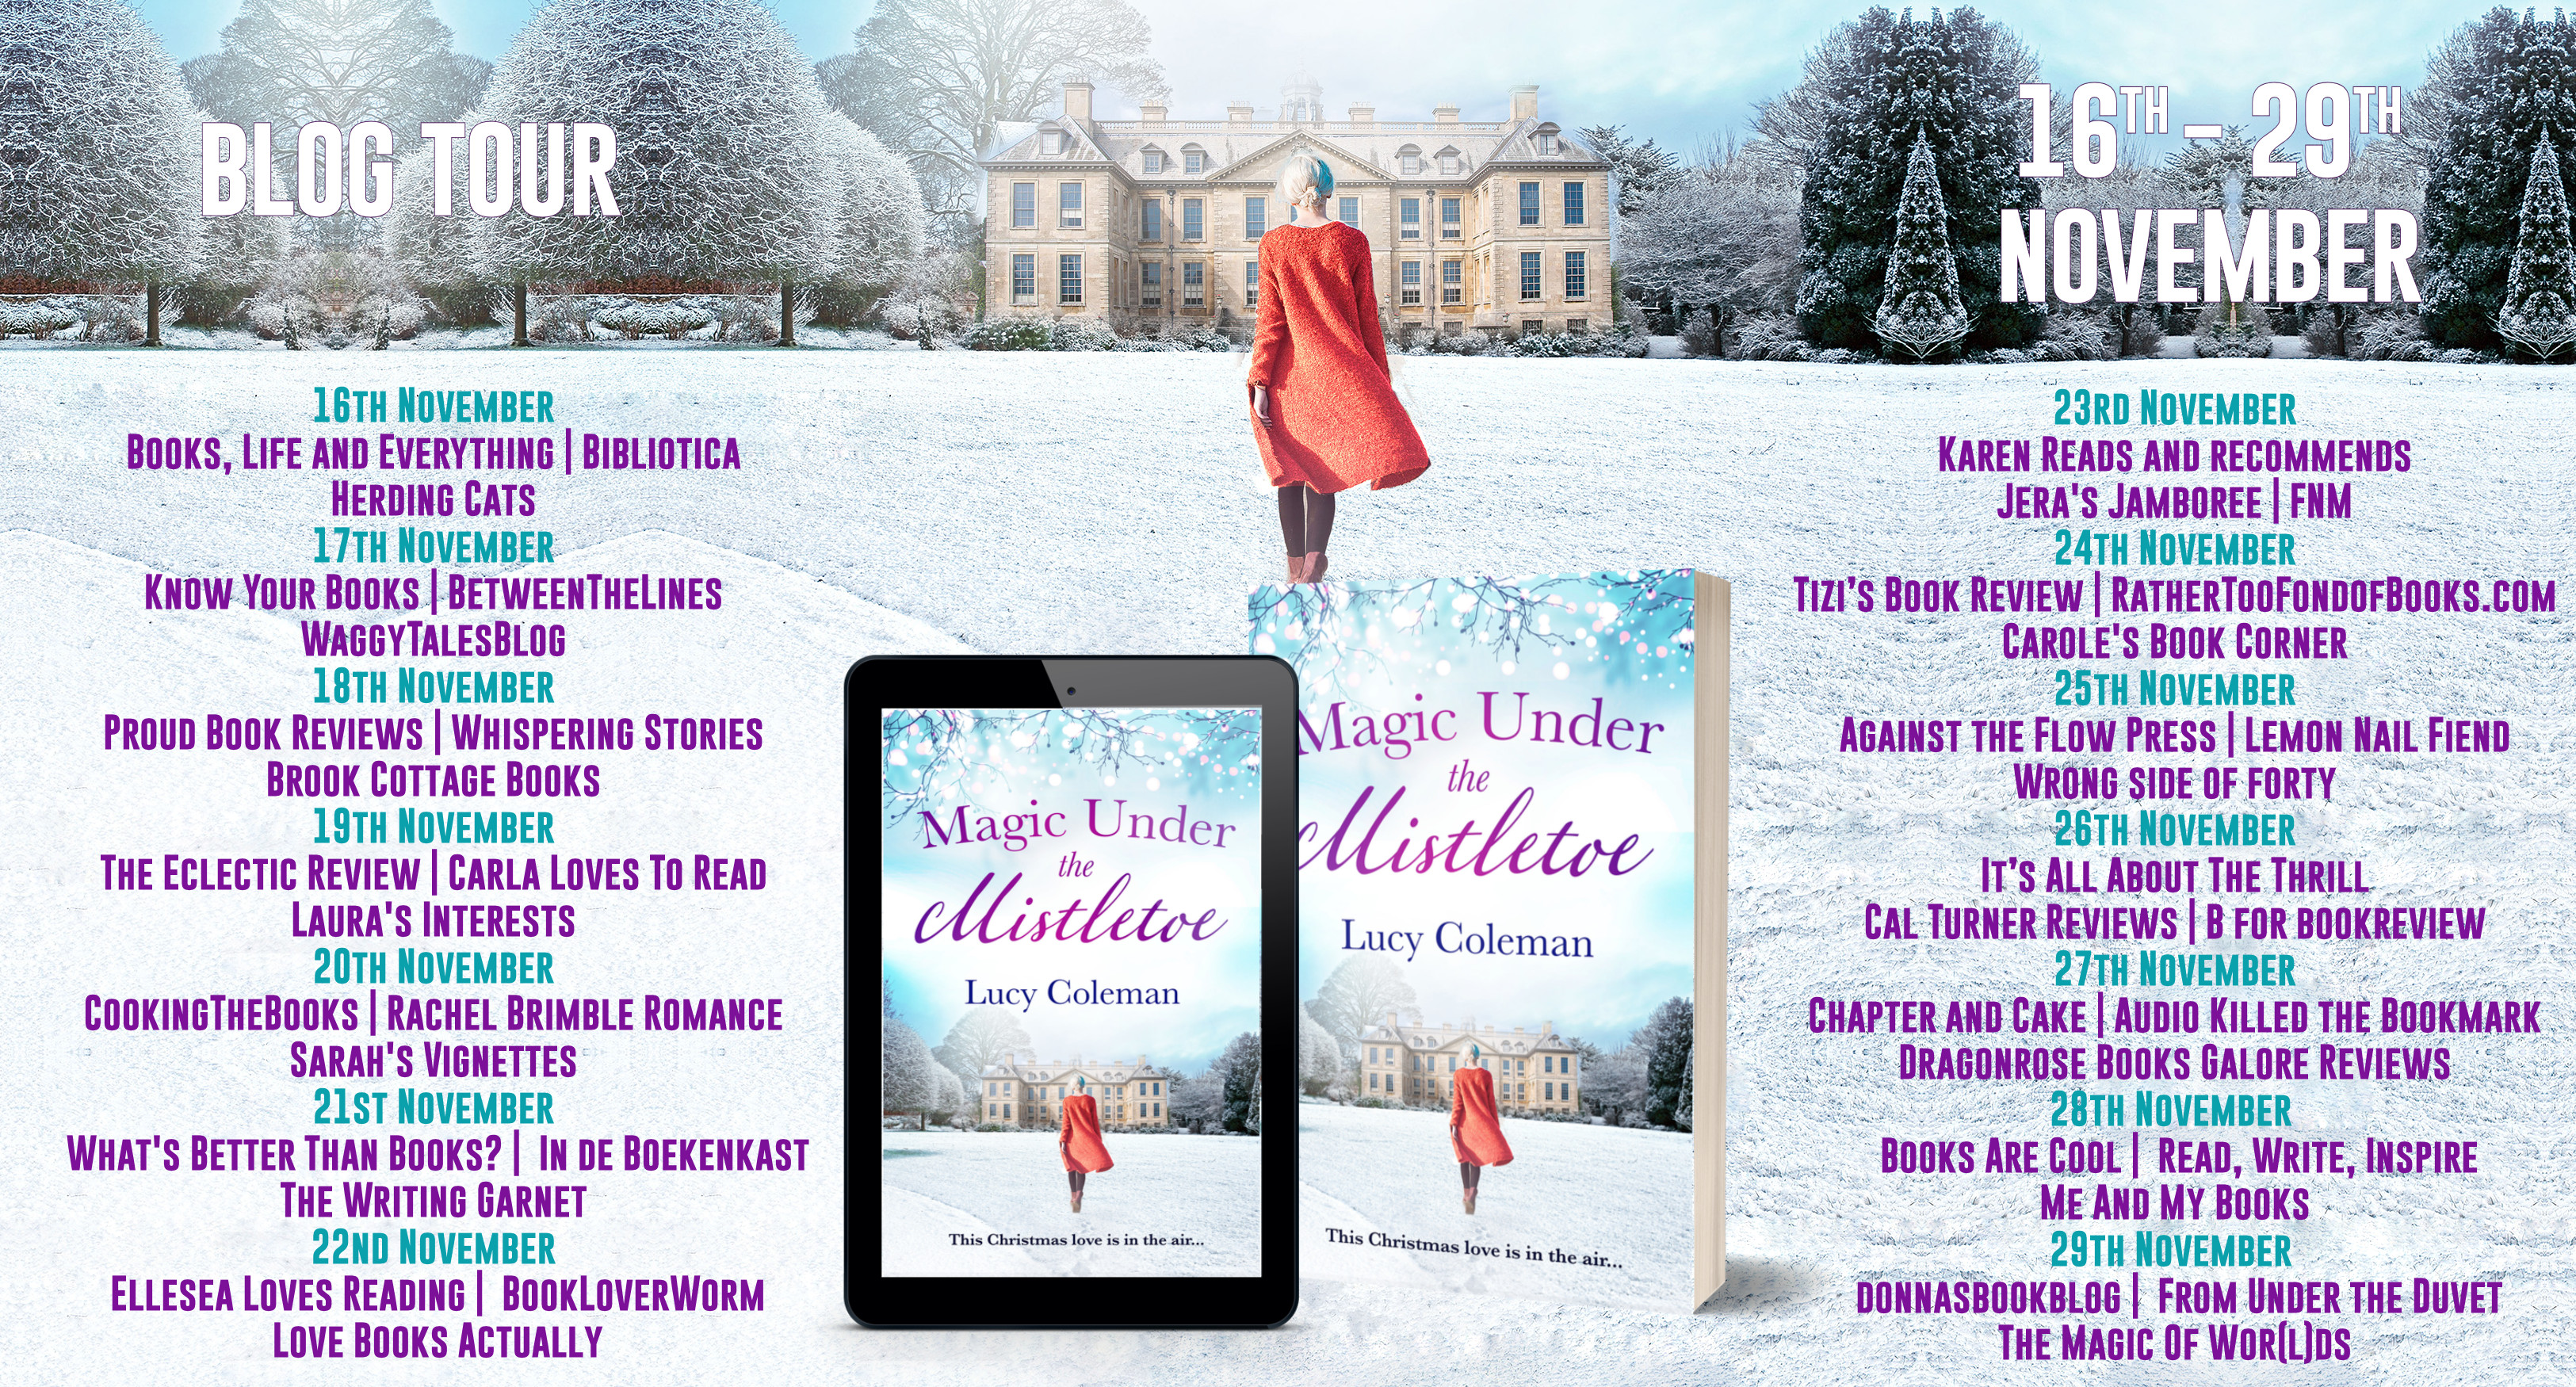 Magic Under The Mistletoe Full Tour Banner.jpg